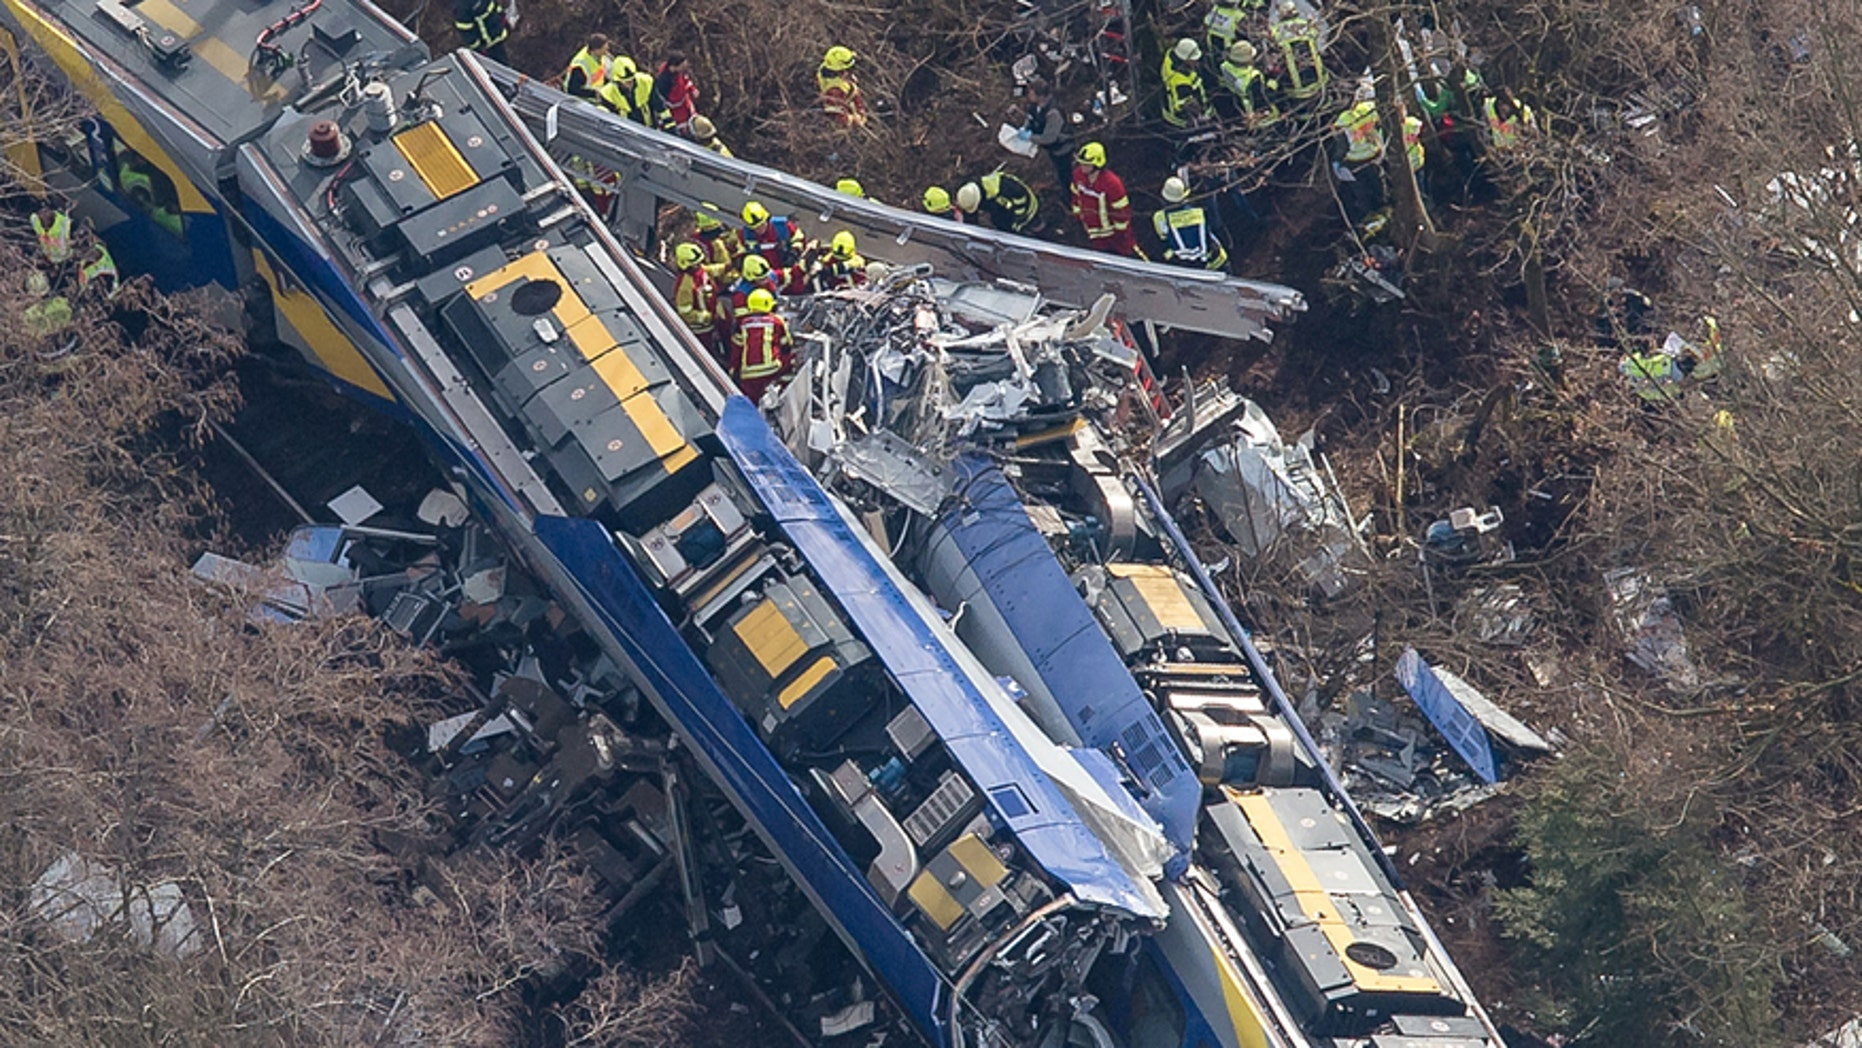 Aerial view of rescue forces working at the site of a train accident near Bad Aibling,Germany, Tuesday, Feb. 9, 2016. Several people were killed when two trains collided head-on. (Peter Kneffel/dpa via AP)